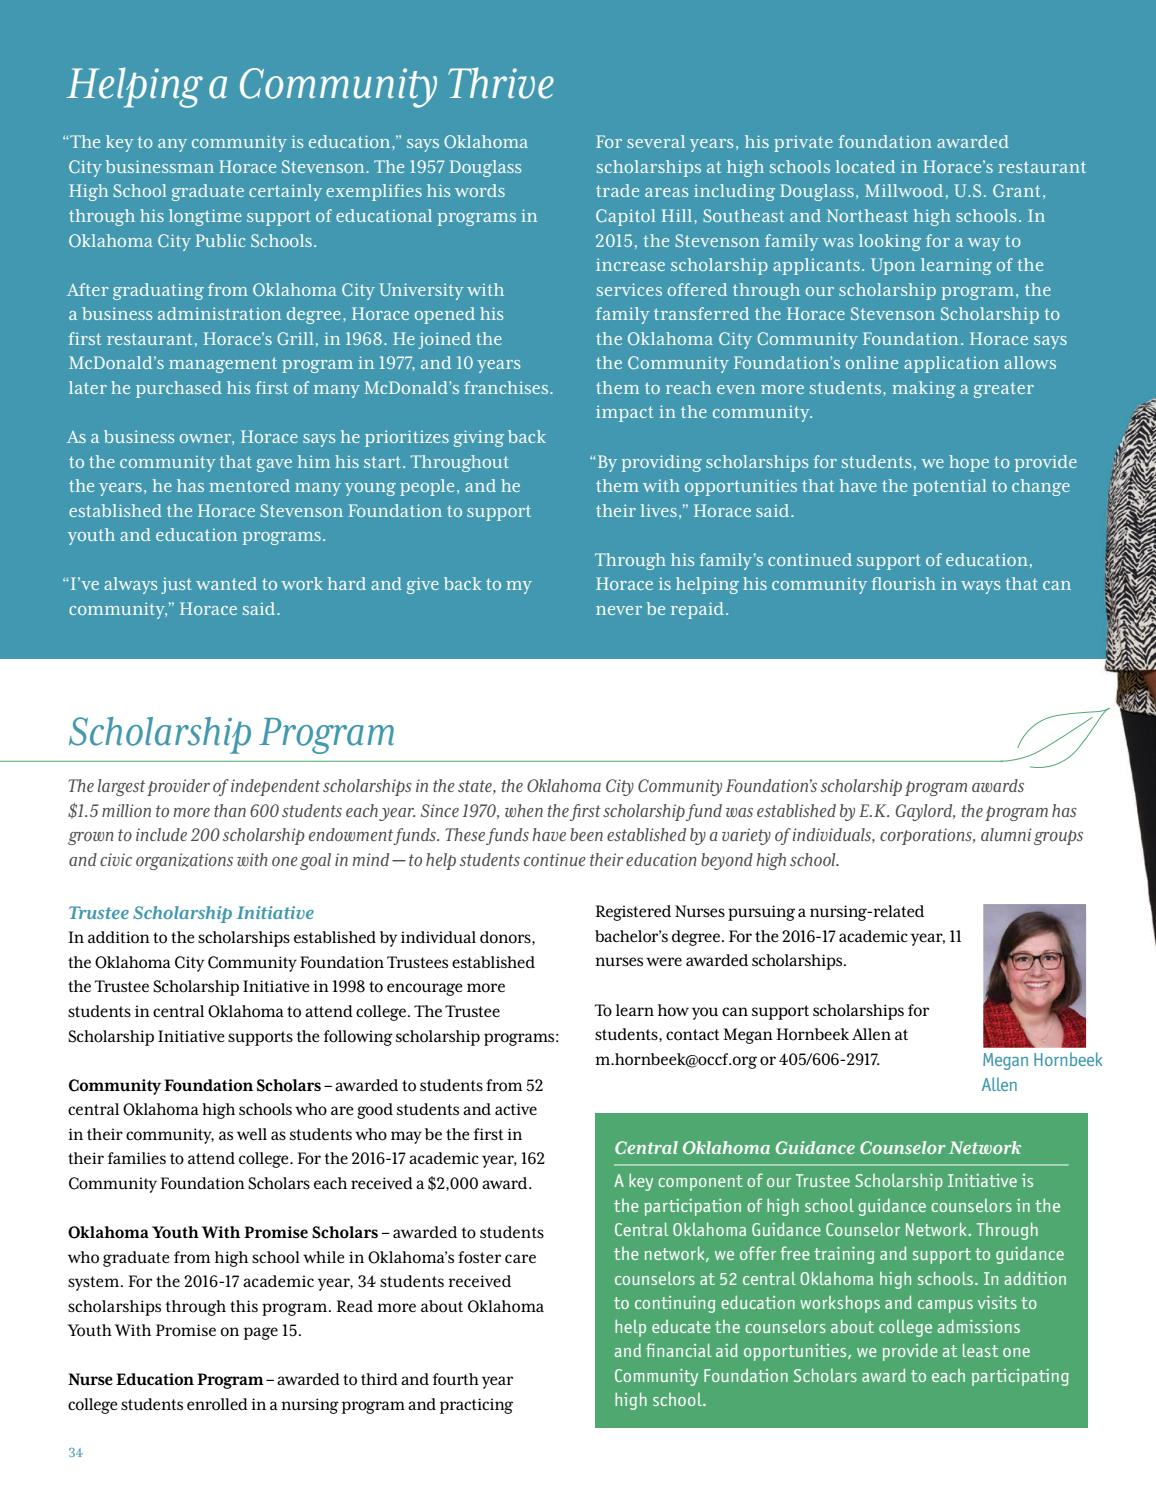 Scholarships For College Students 2016 >> 2016 Oklahoma City Community Foundation Annual Report By